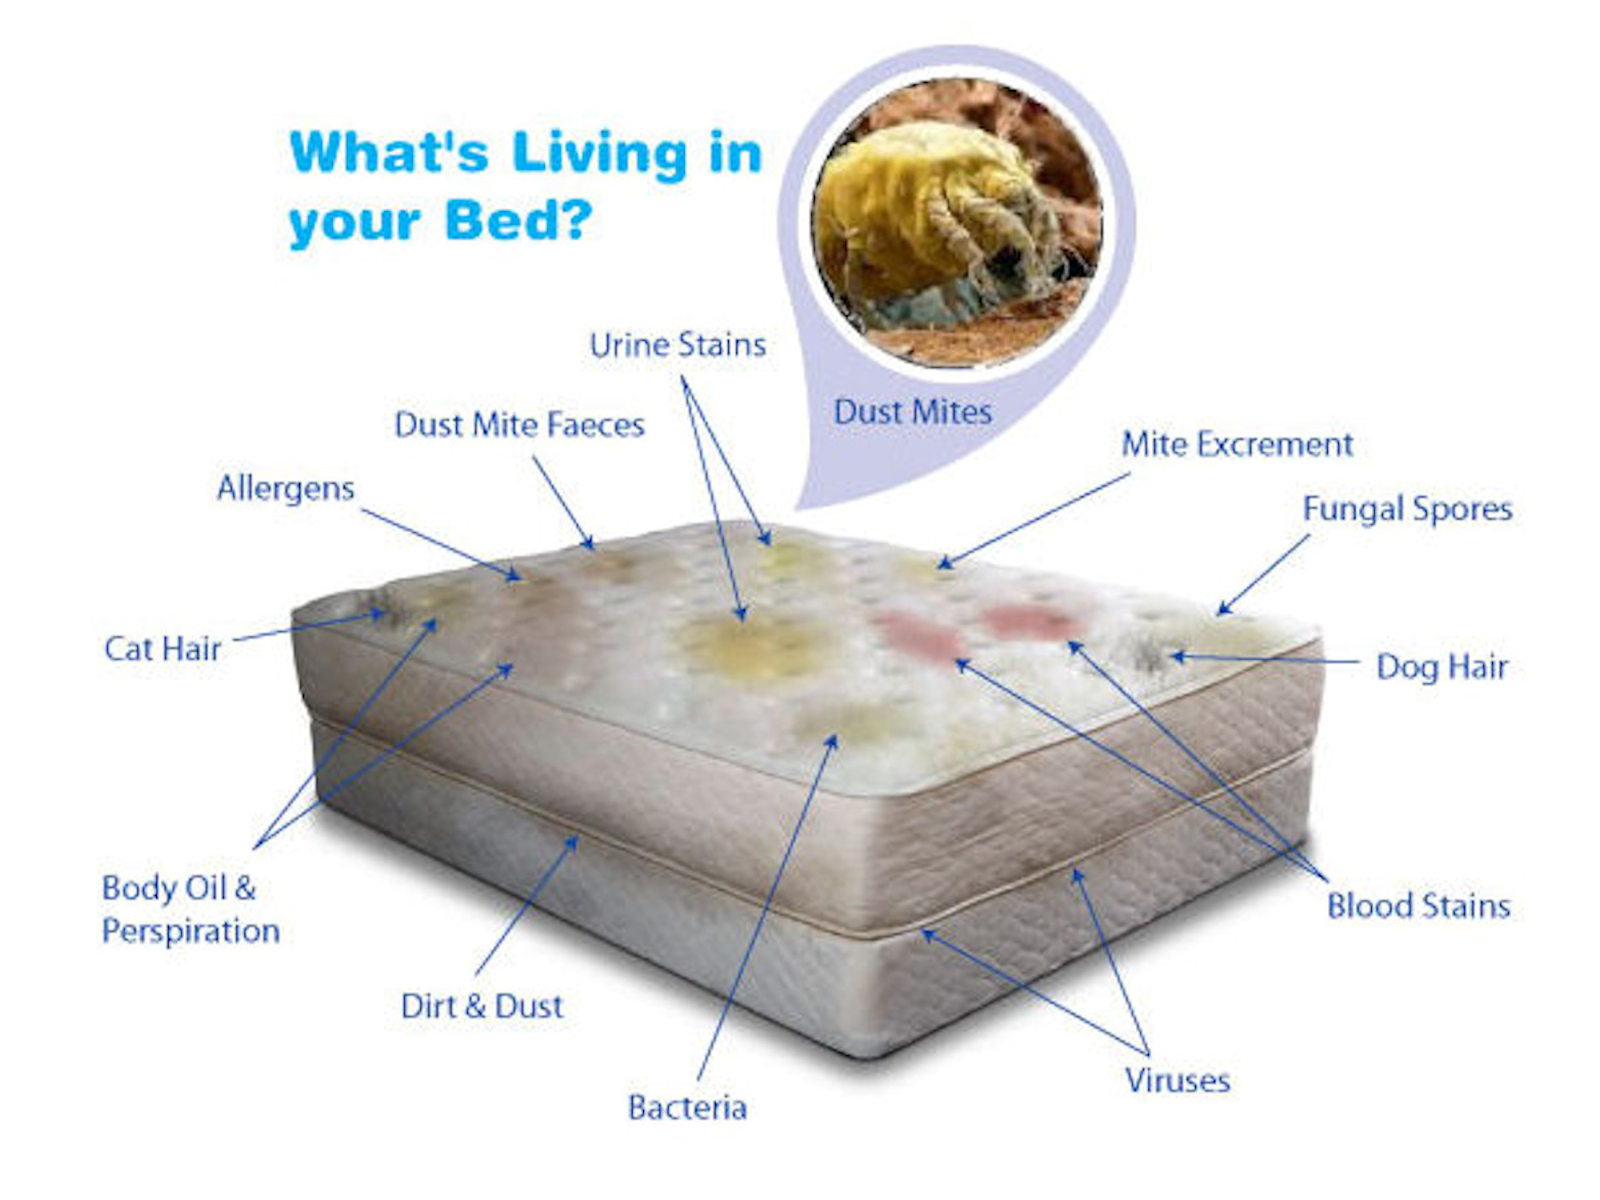 Mattress Cleaning - What is in your mattress